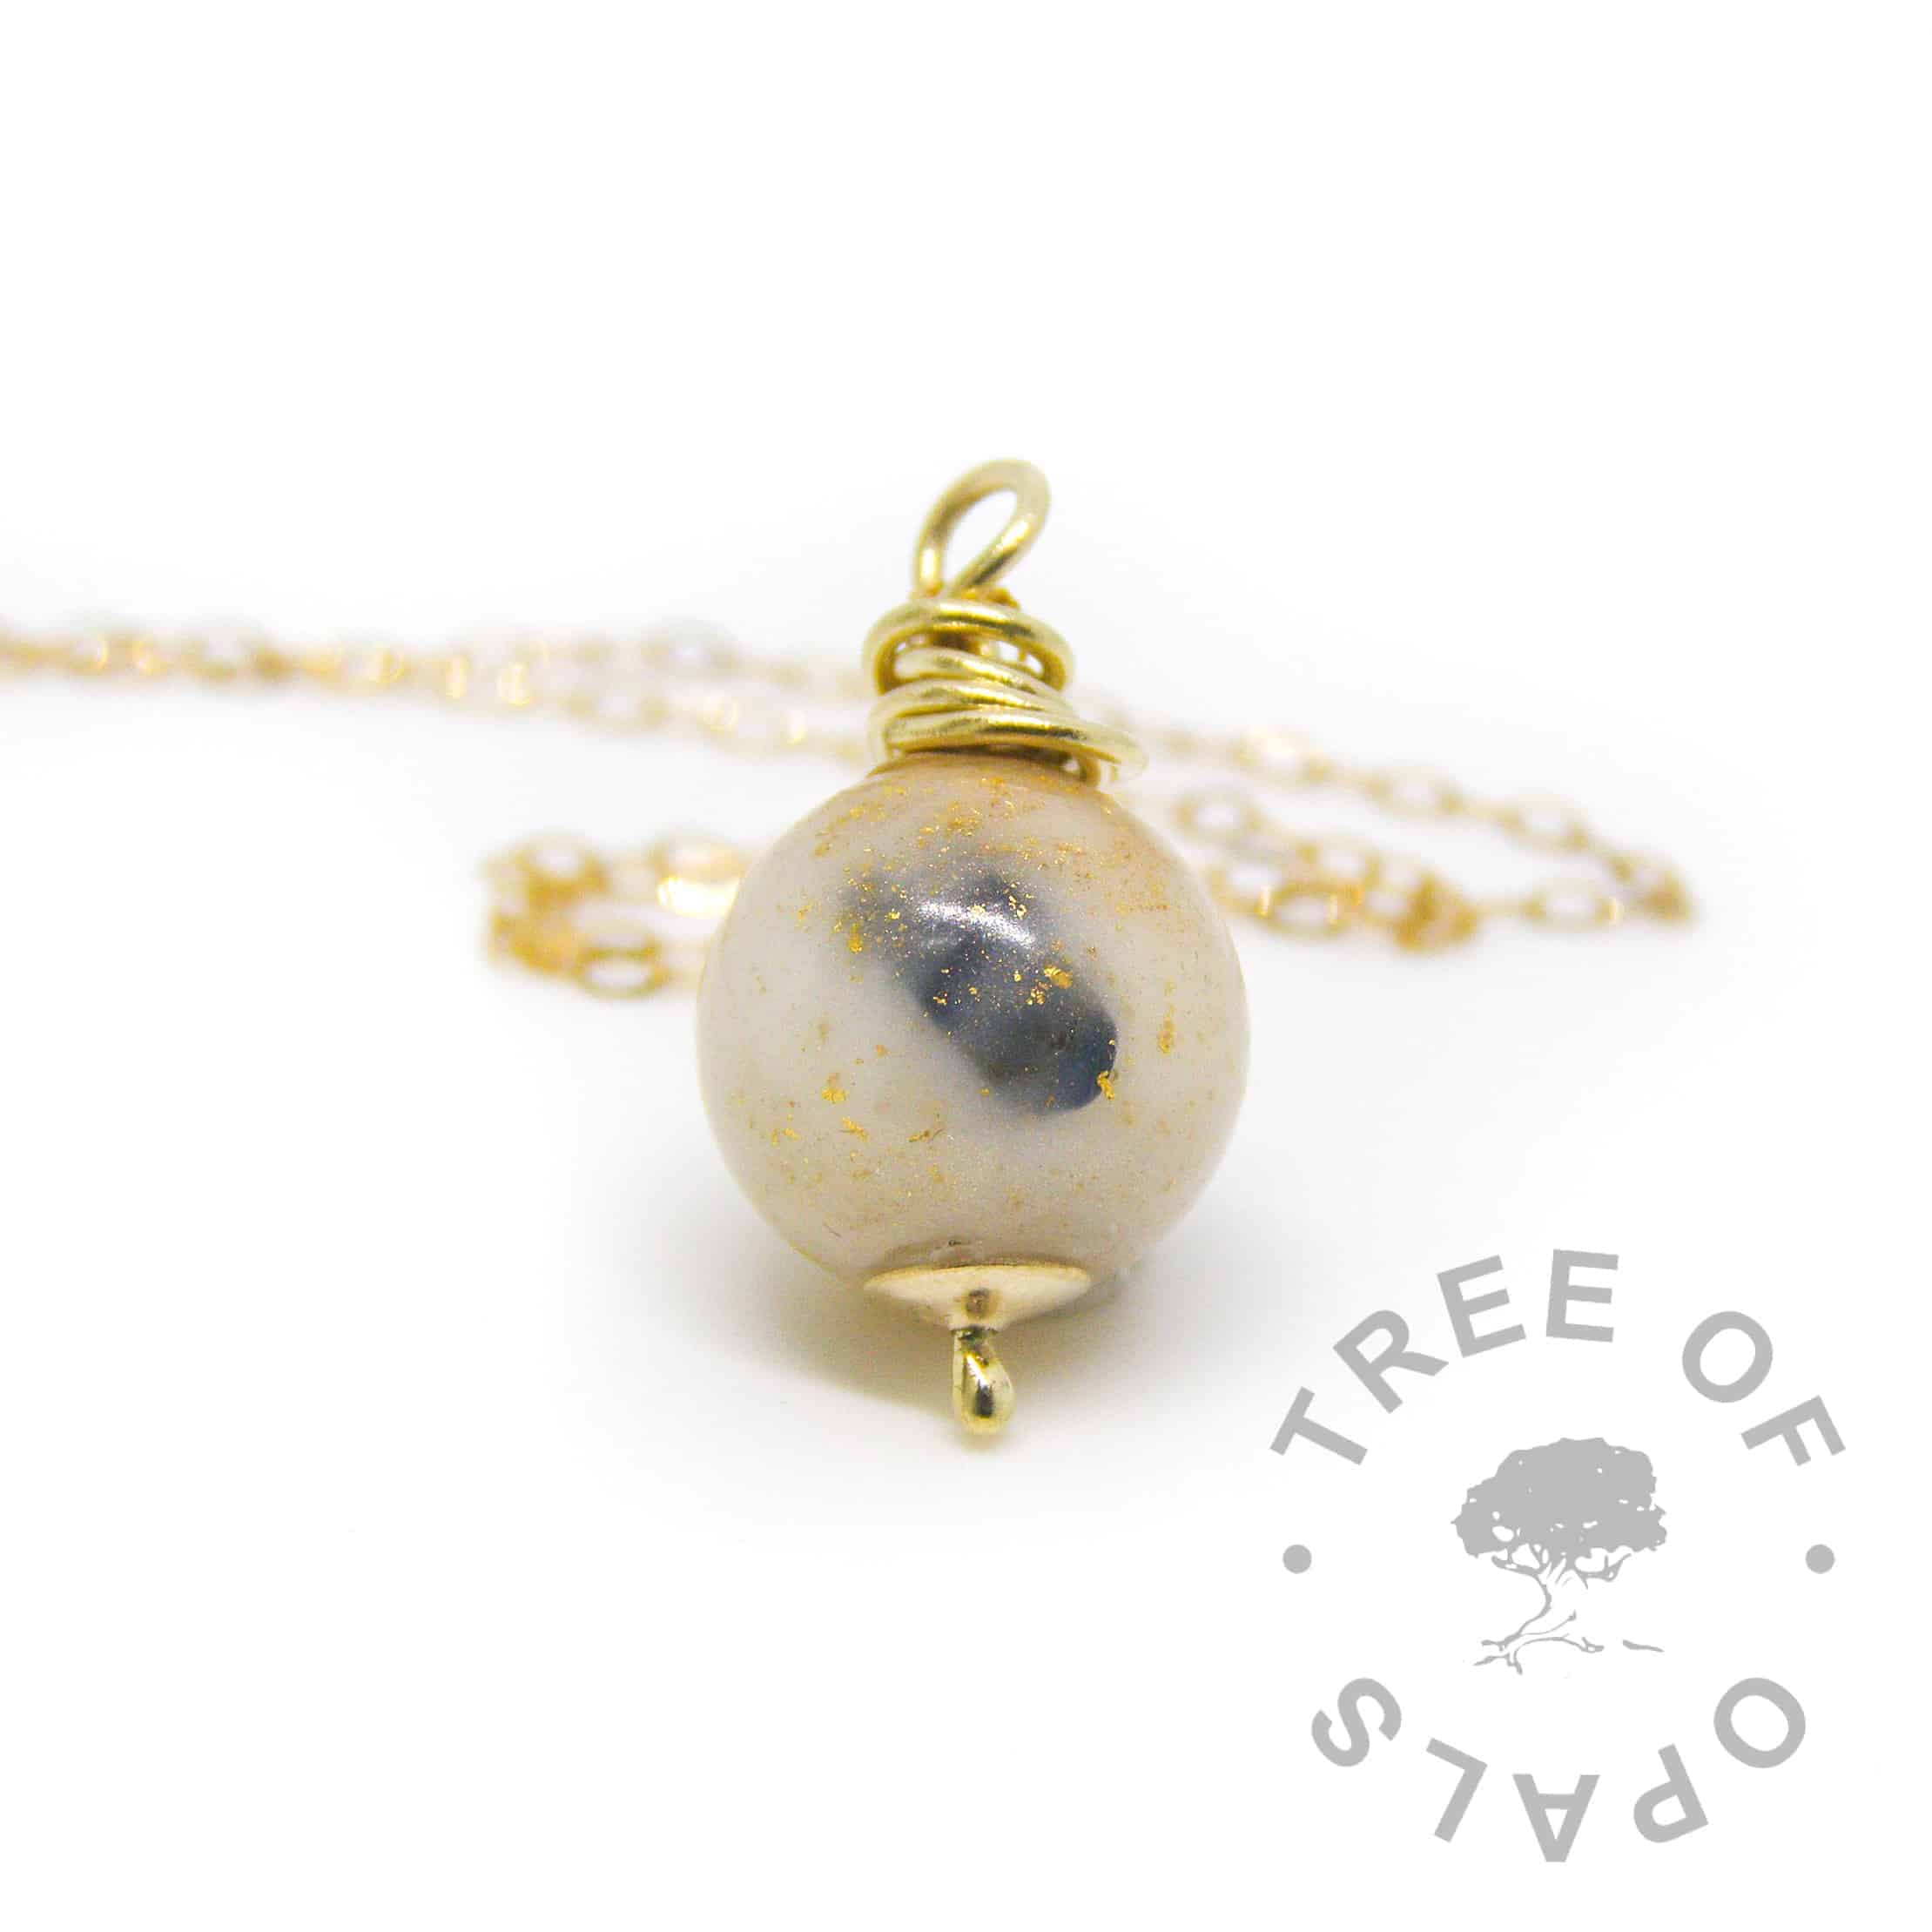 solid gold breastmilk pearl necklace with sapphire September birthstone, genuine gold leaf to represent one year breastfeeding award golden boobies, set with solid 9ct gold hand wire wrapped pearl necklace